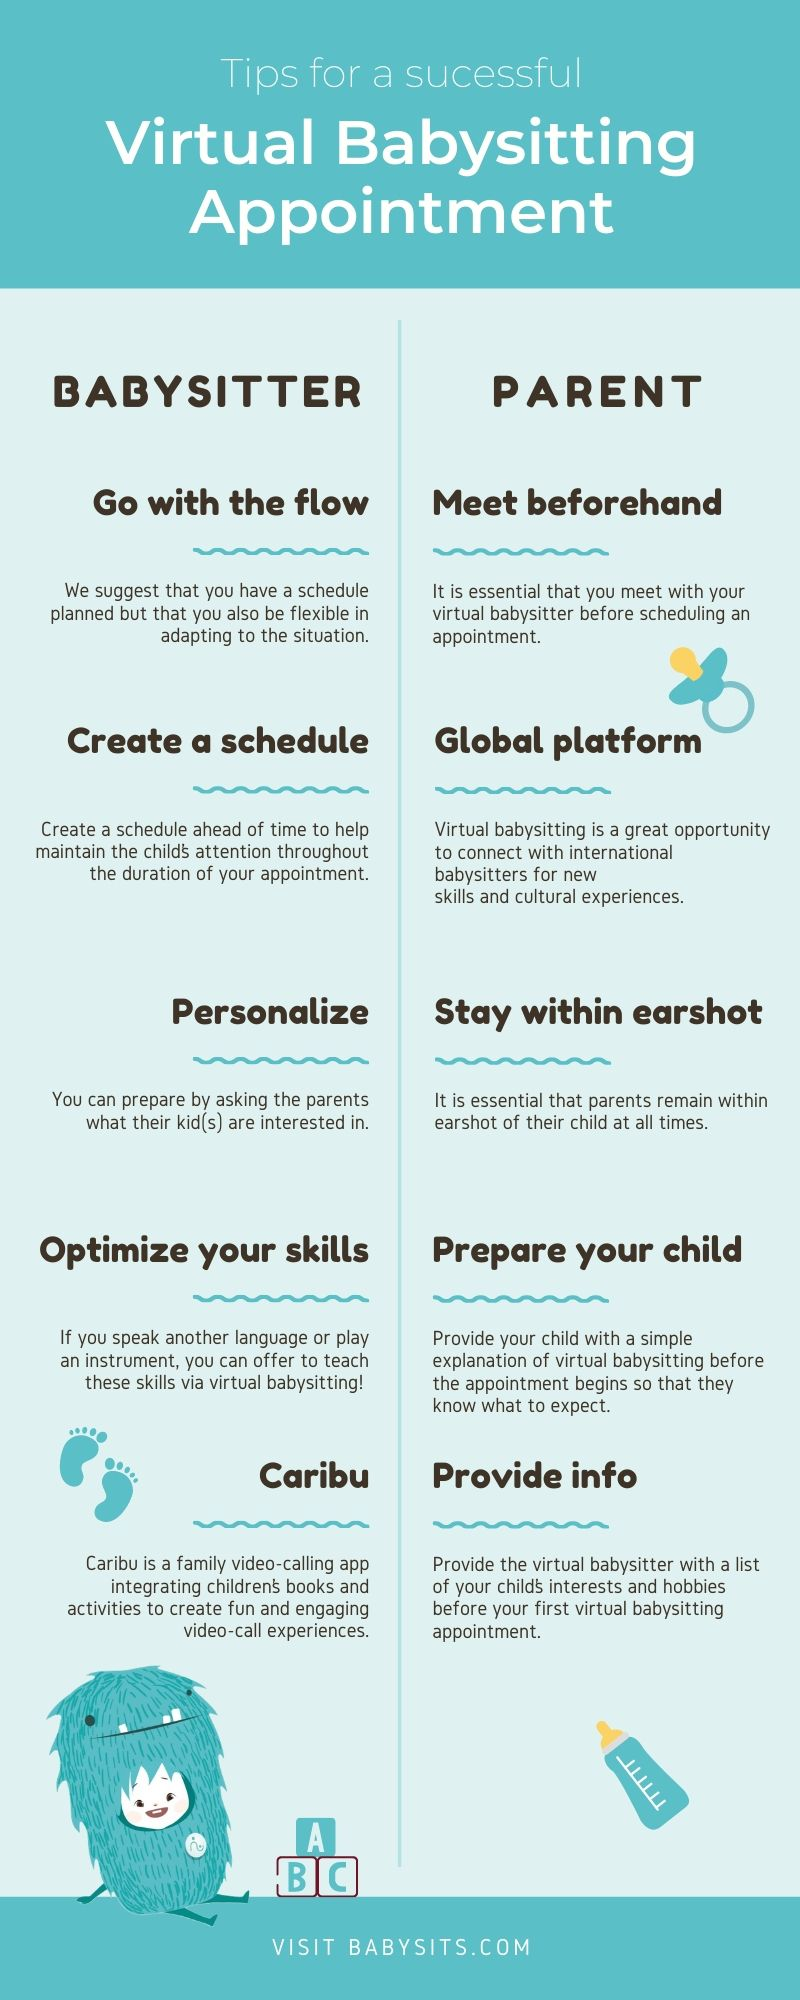 Tips for Virtual Babysitting